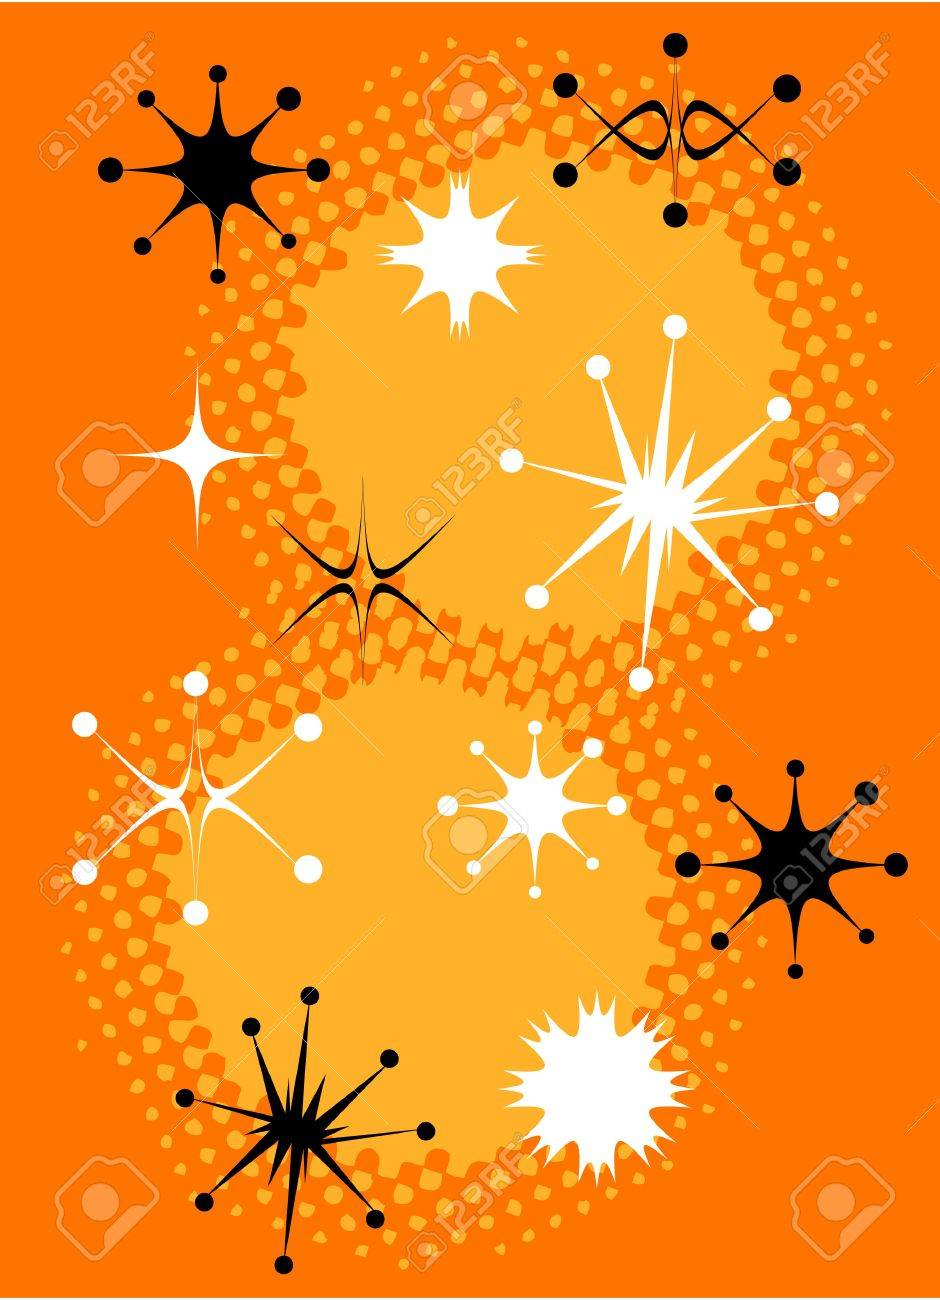 Retro Stars Clip Art Vintage Royalty Free Cliparts, Vectors, And ...